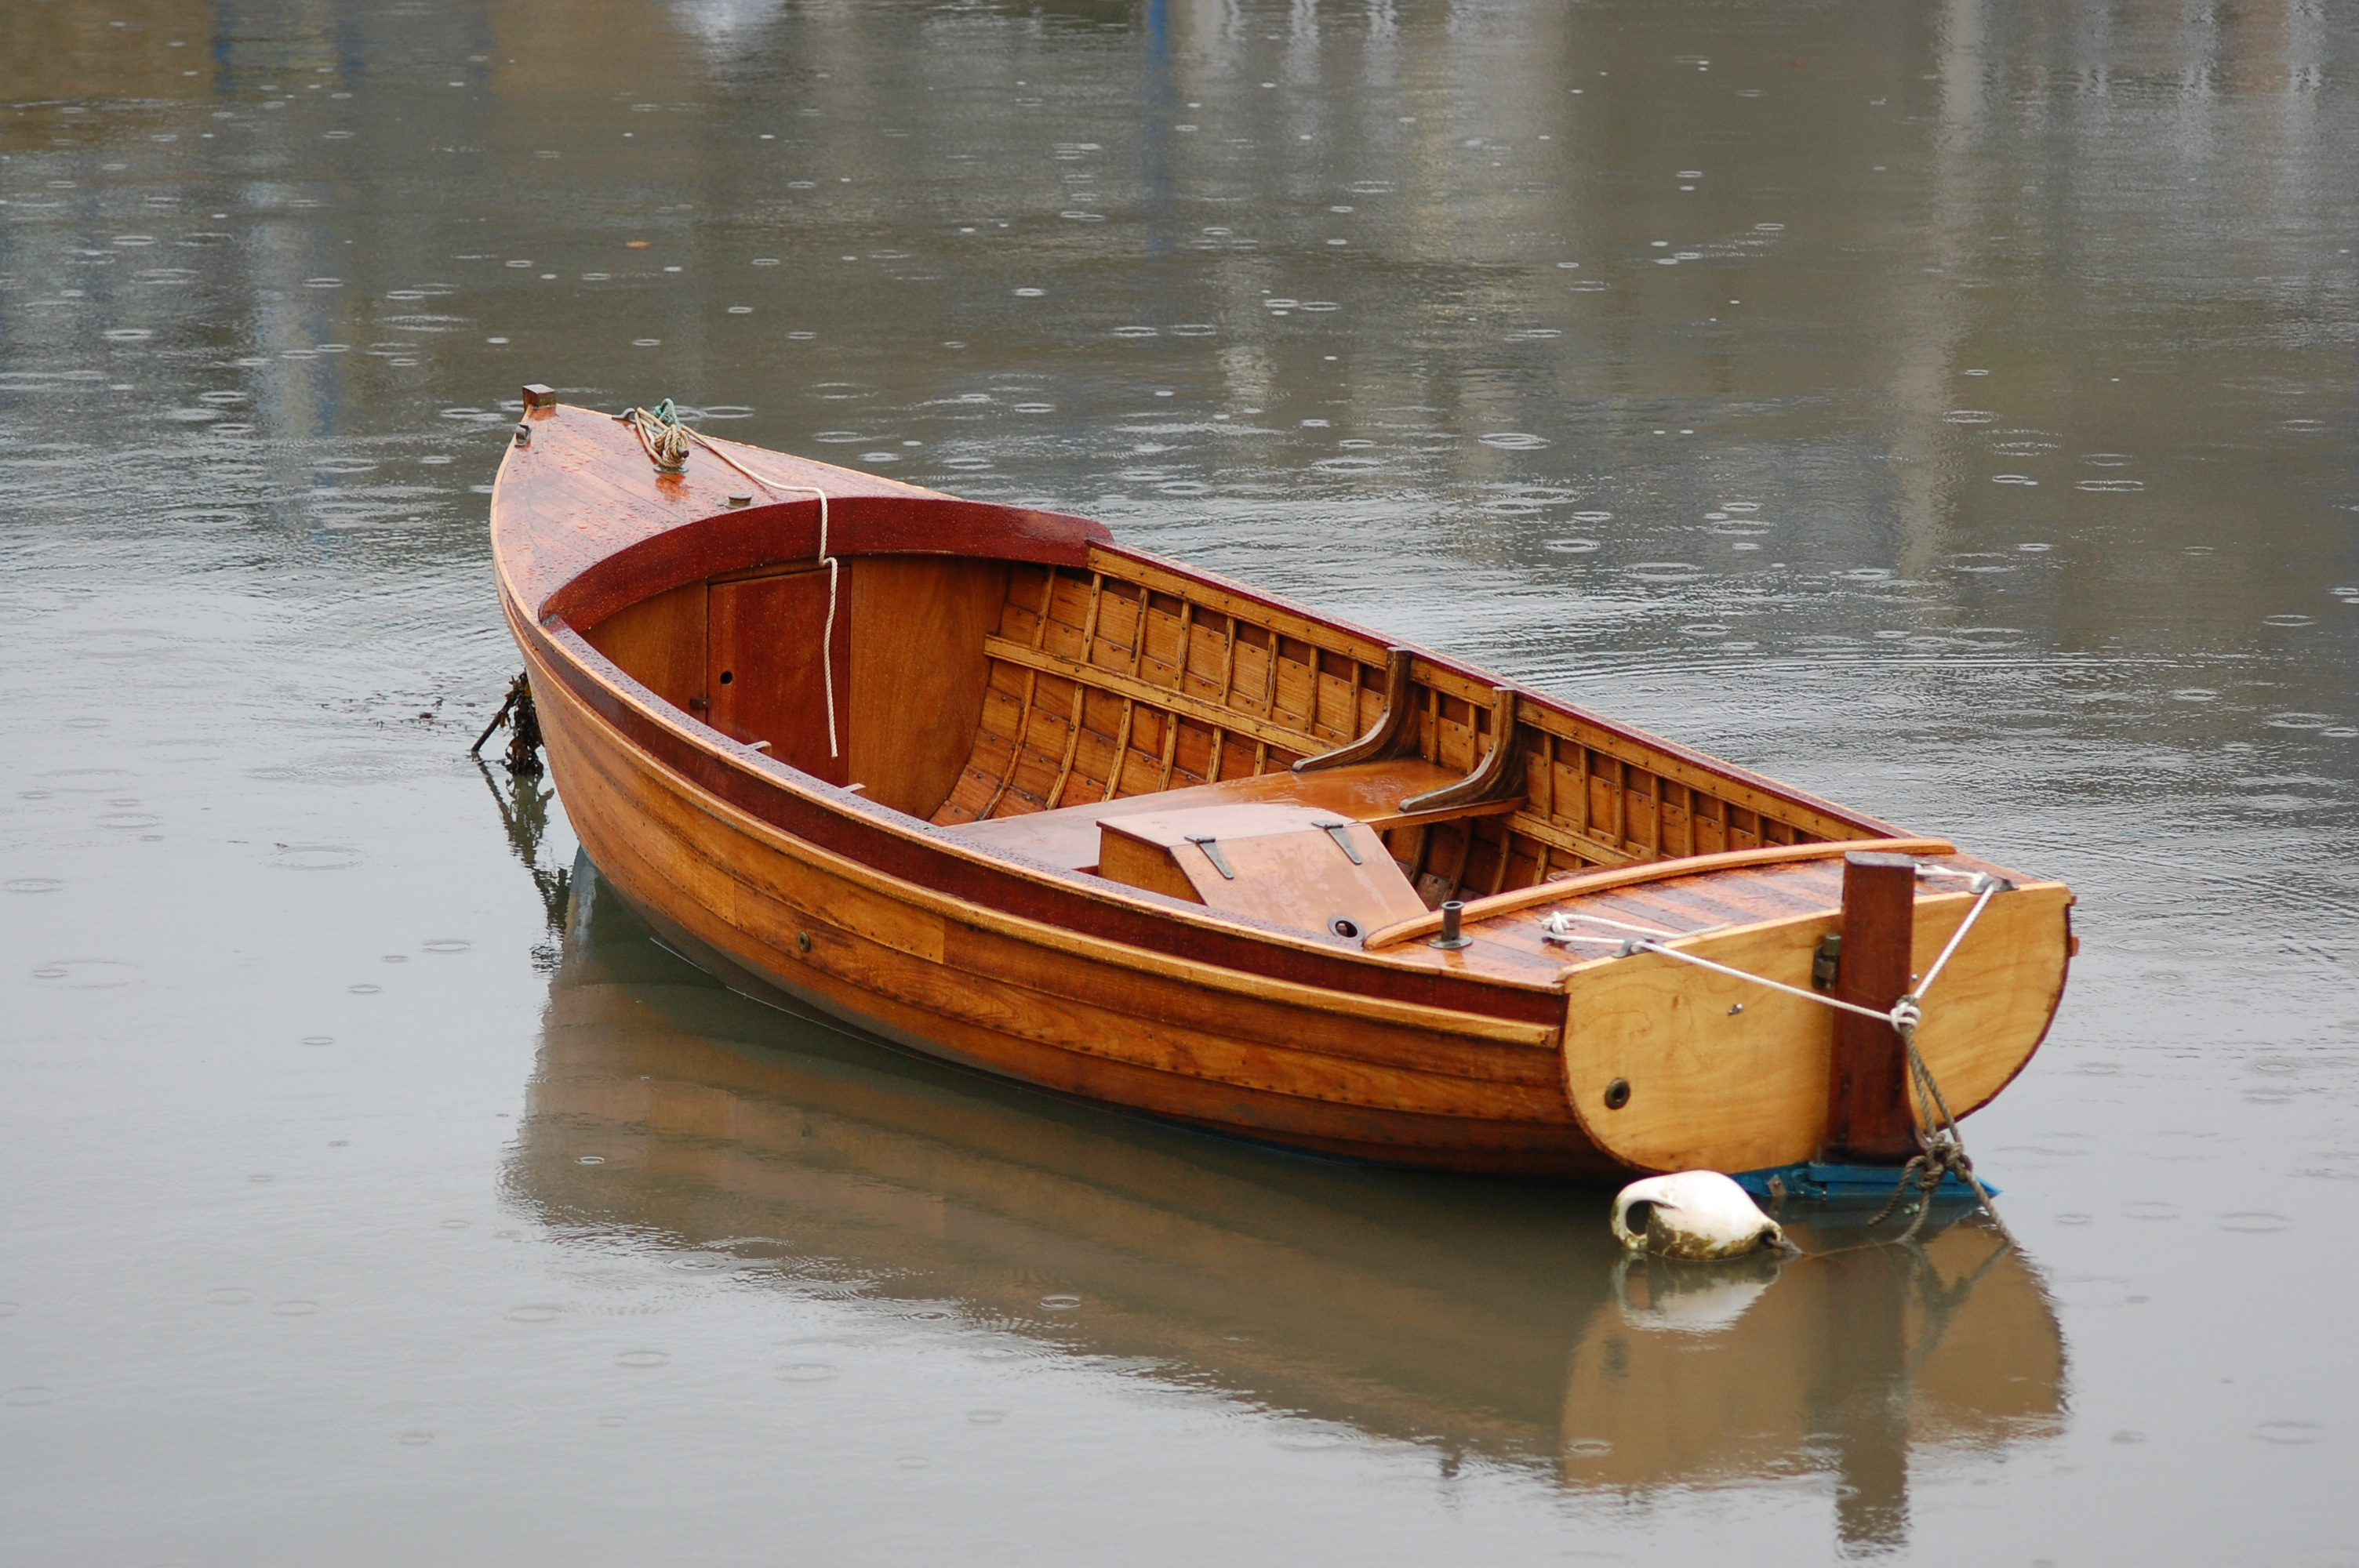 How to survey wooden boats: Image 1